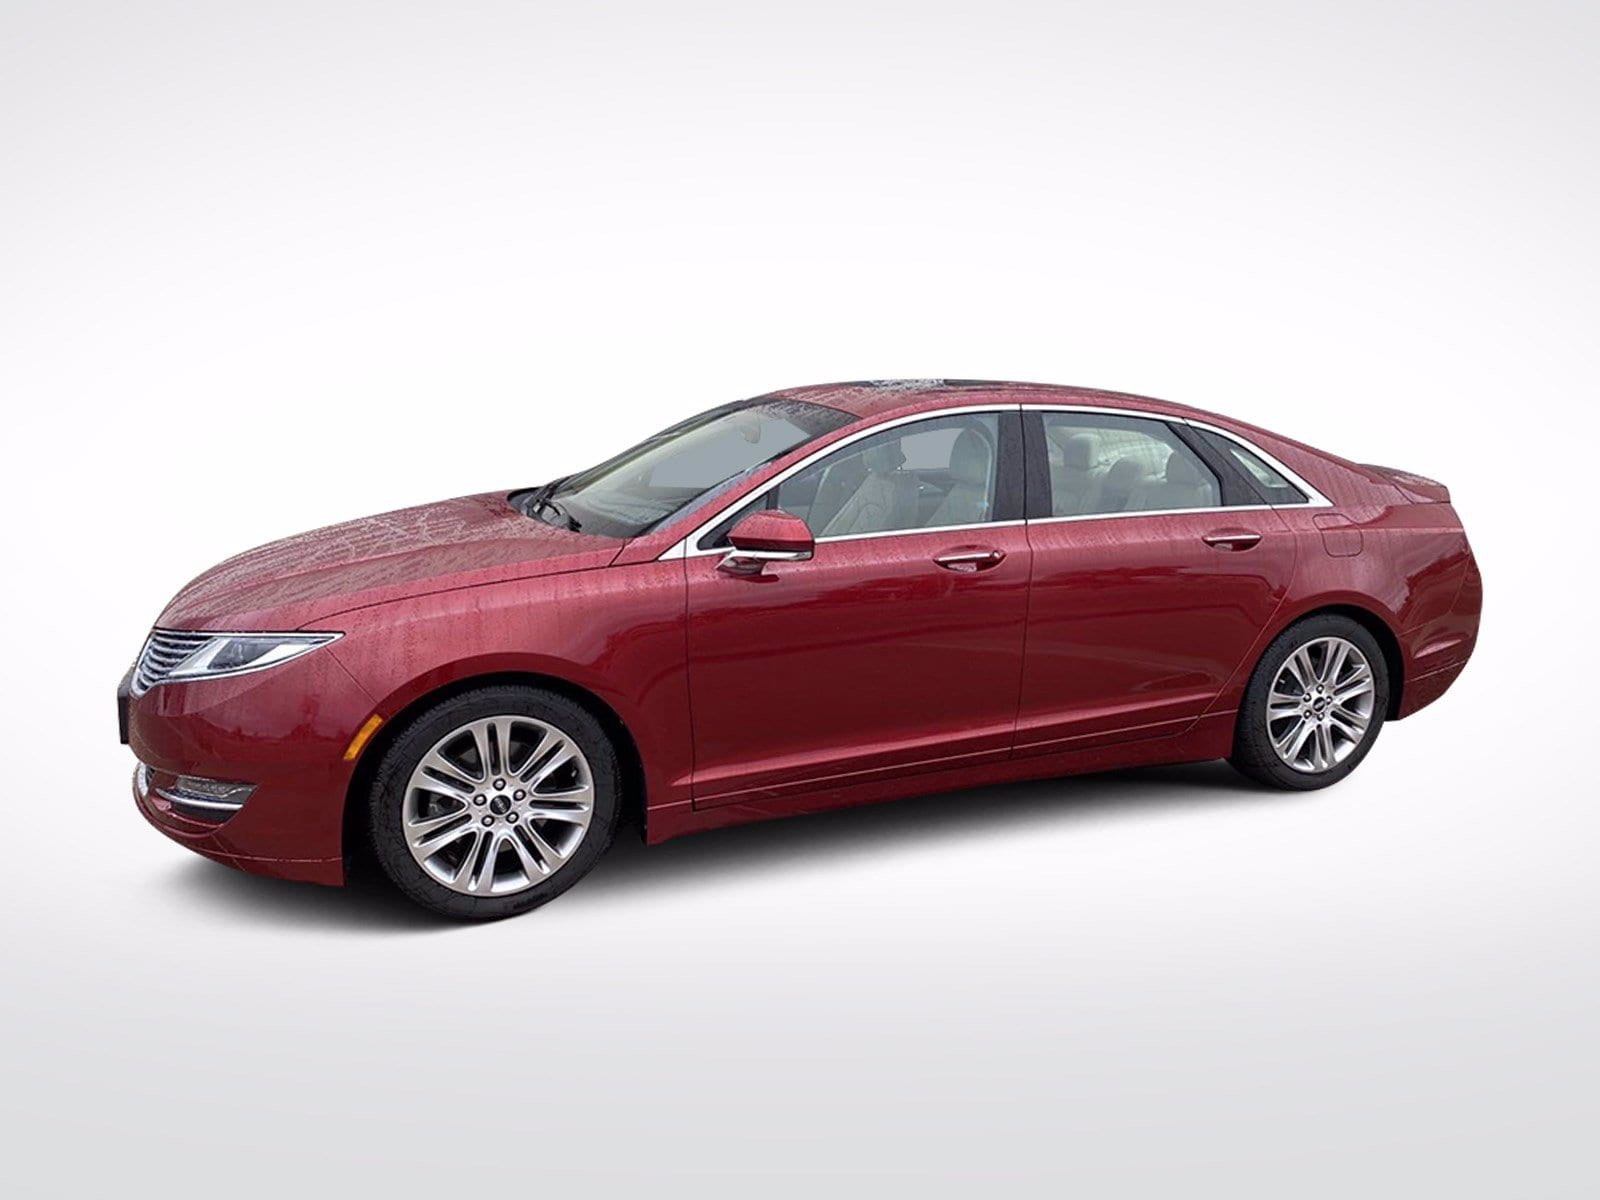 Used 2013 Lincoln MKZ  with VIN 3LN6L2GK9DR814167 for sale in Baxter, Minnesota